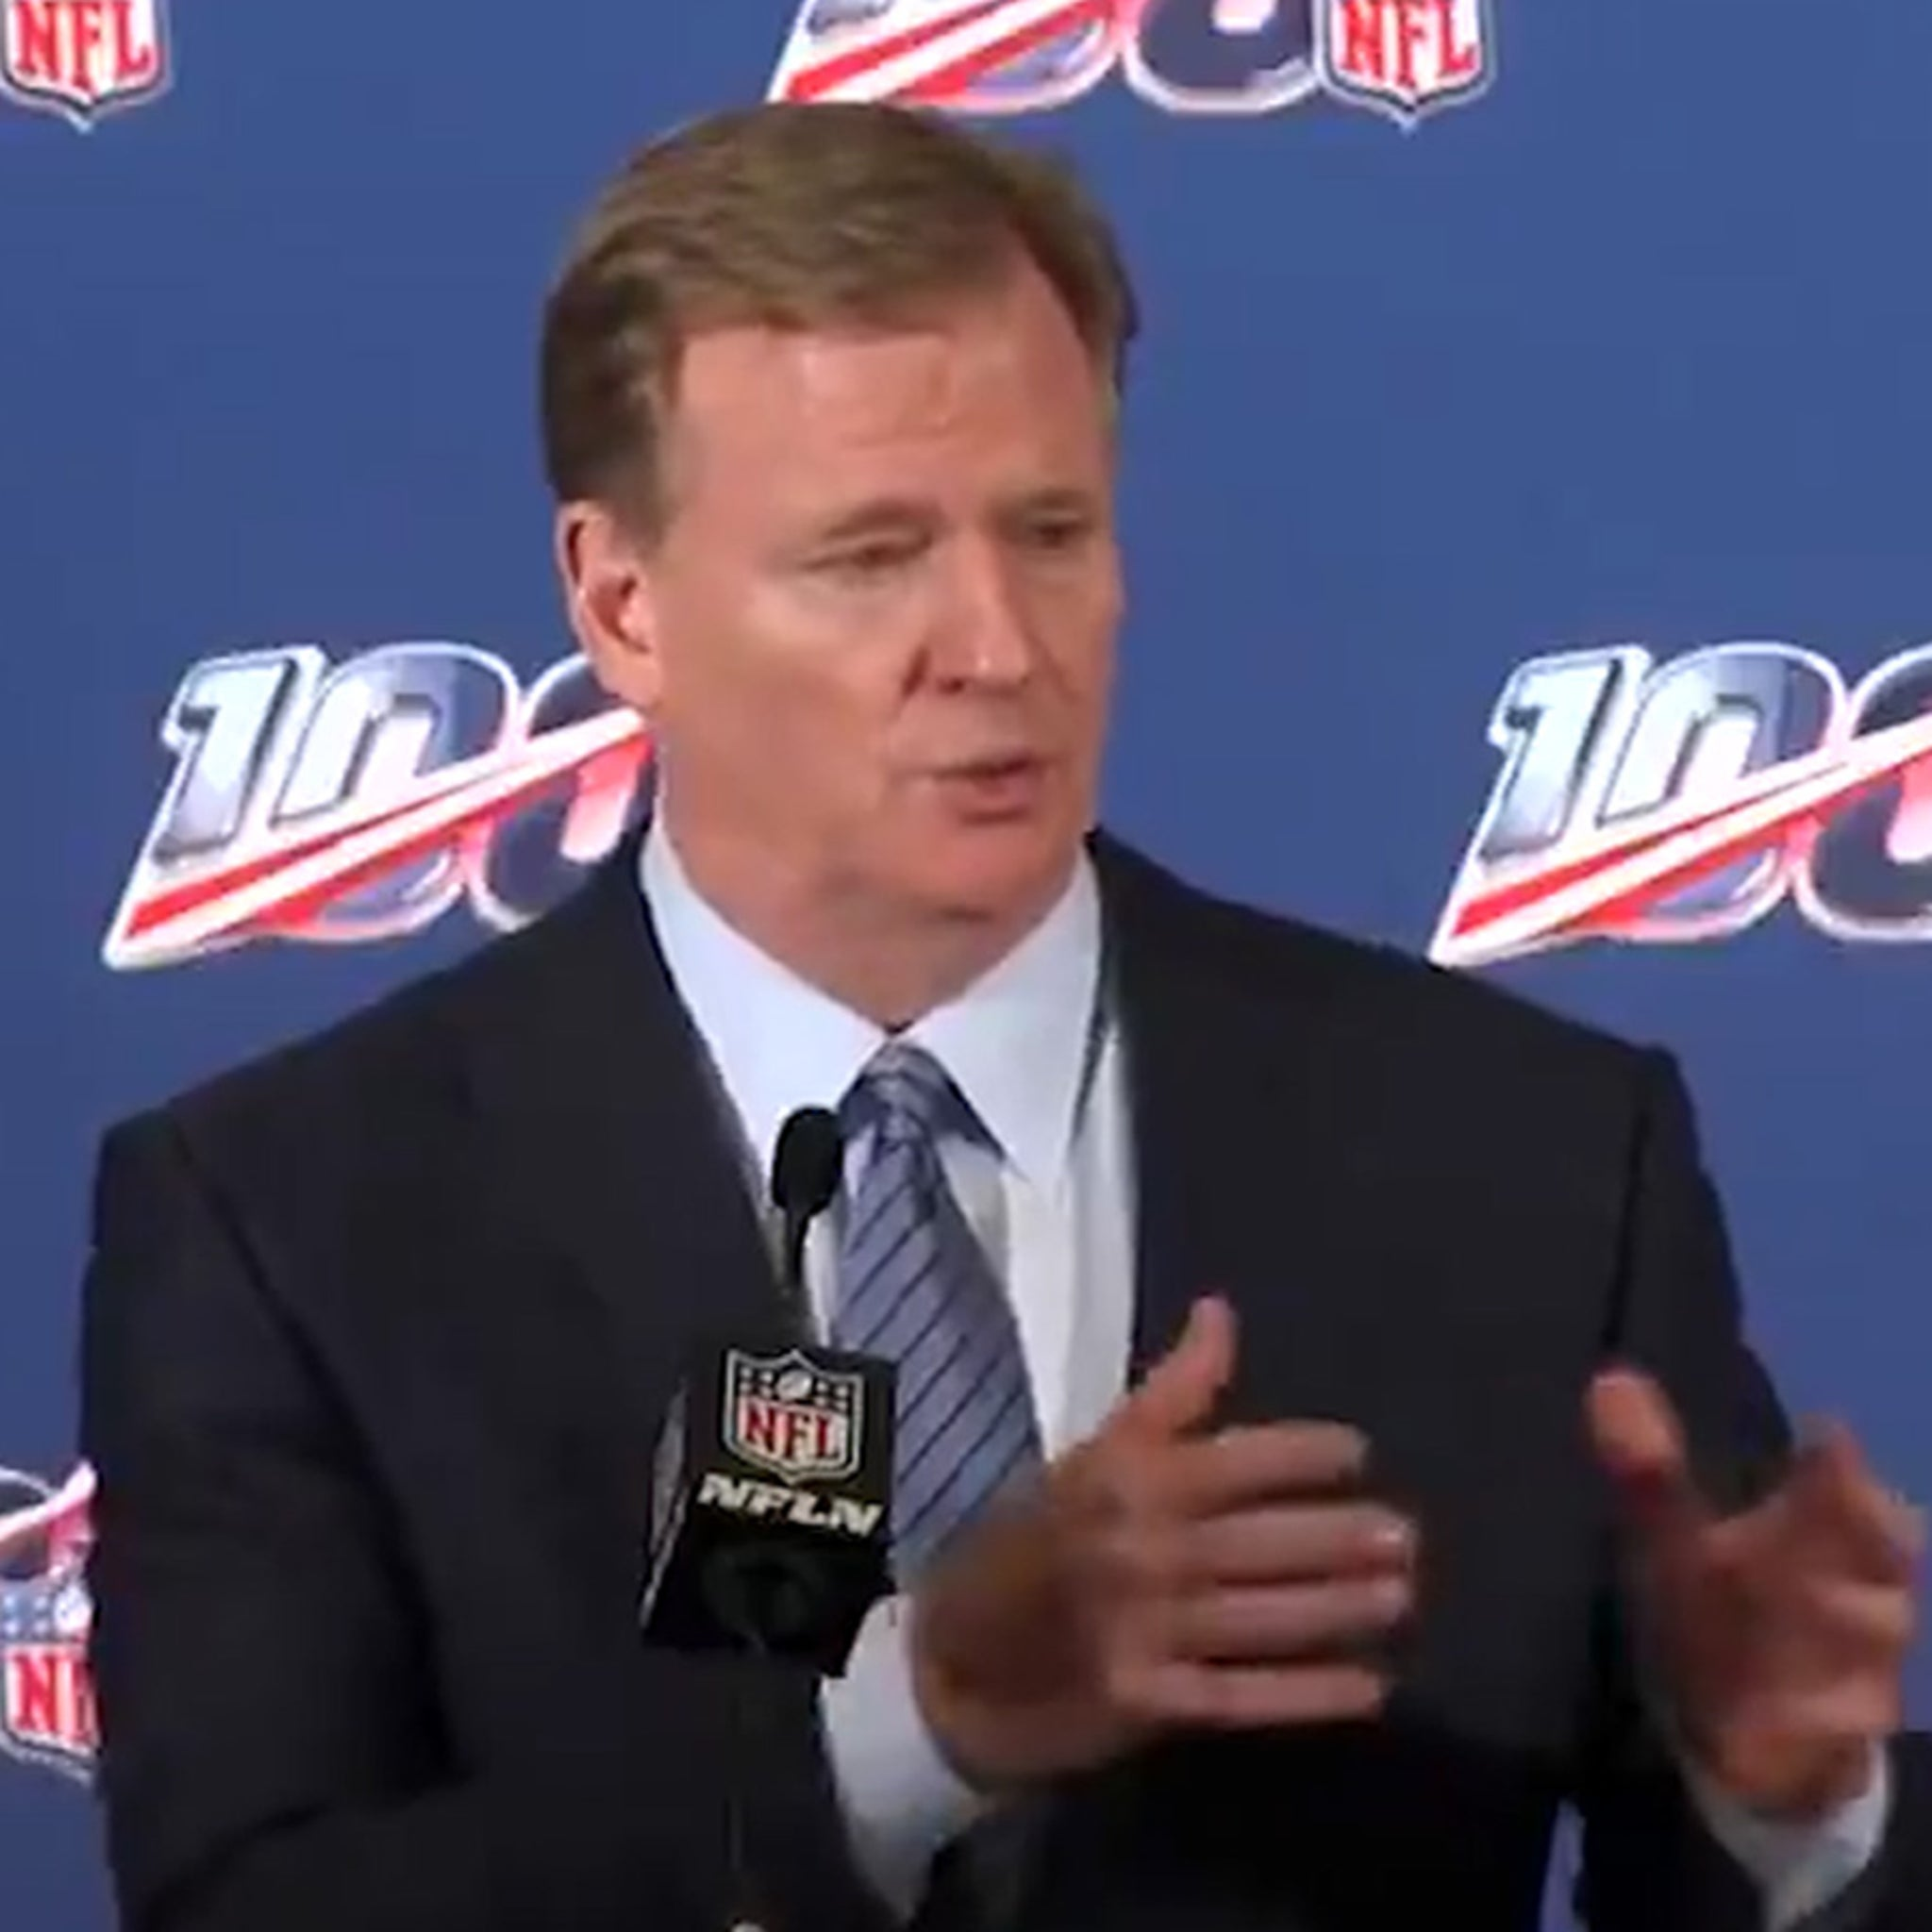 Roger Goodell Says NFL Conducting 'Thorough' Investigation Into Patriots